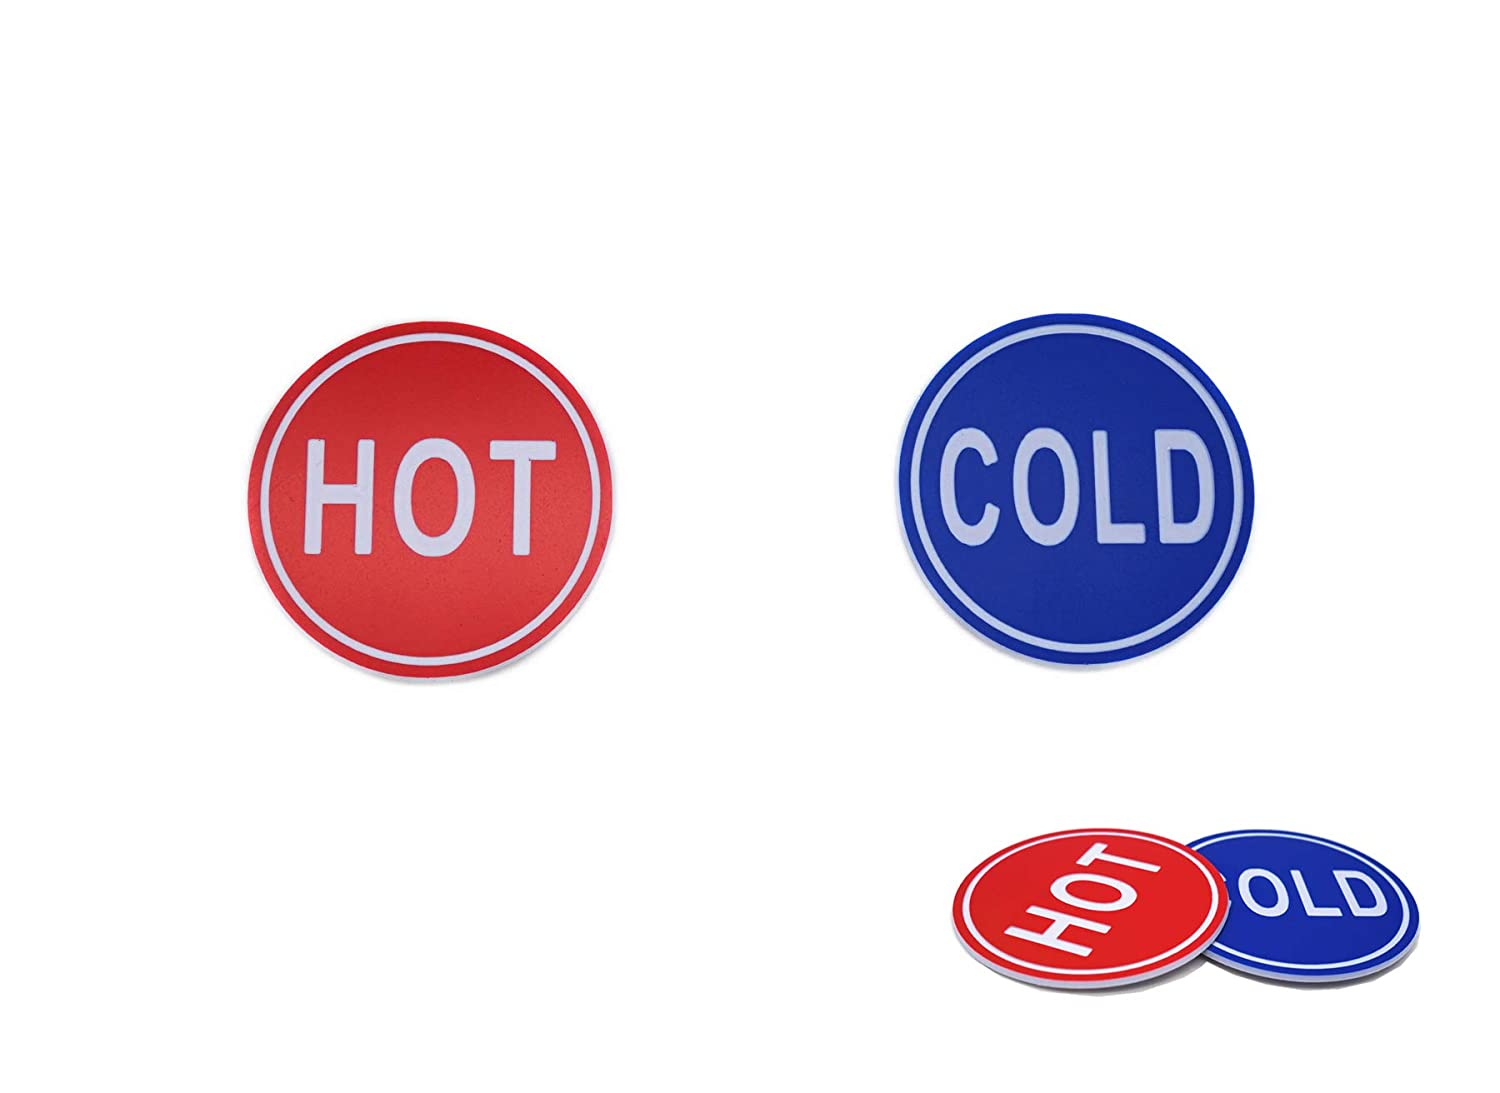 ABS Self Stick Cold Water Label Hot Water Label Hot Label Cold Label 1 Pair